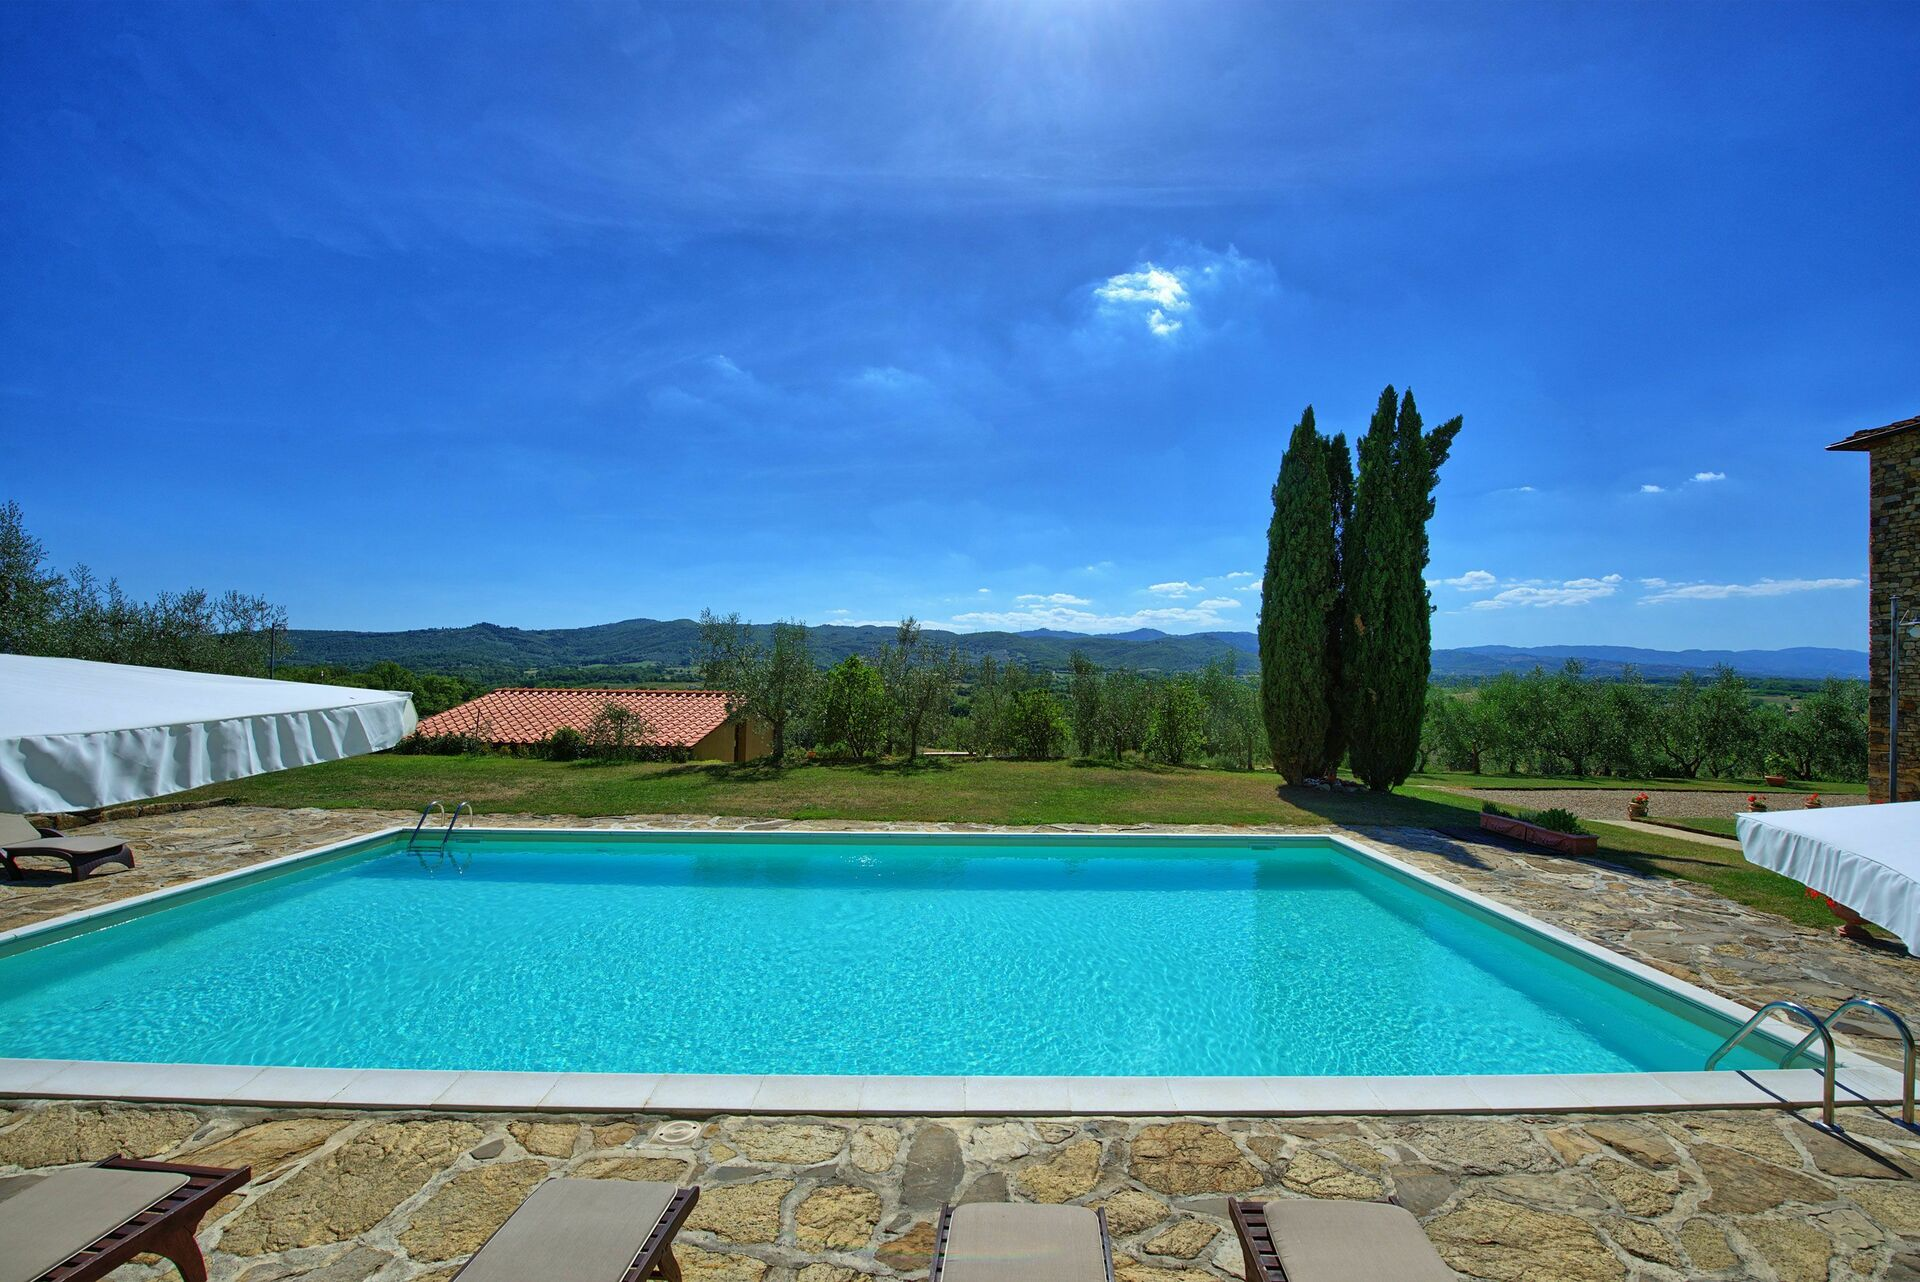 Luxury Holiday Villa With Pool Villa Leopoldina Luxury Holiday Villa Rental In Pogi Chianti